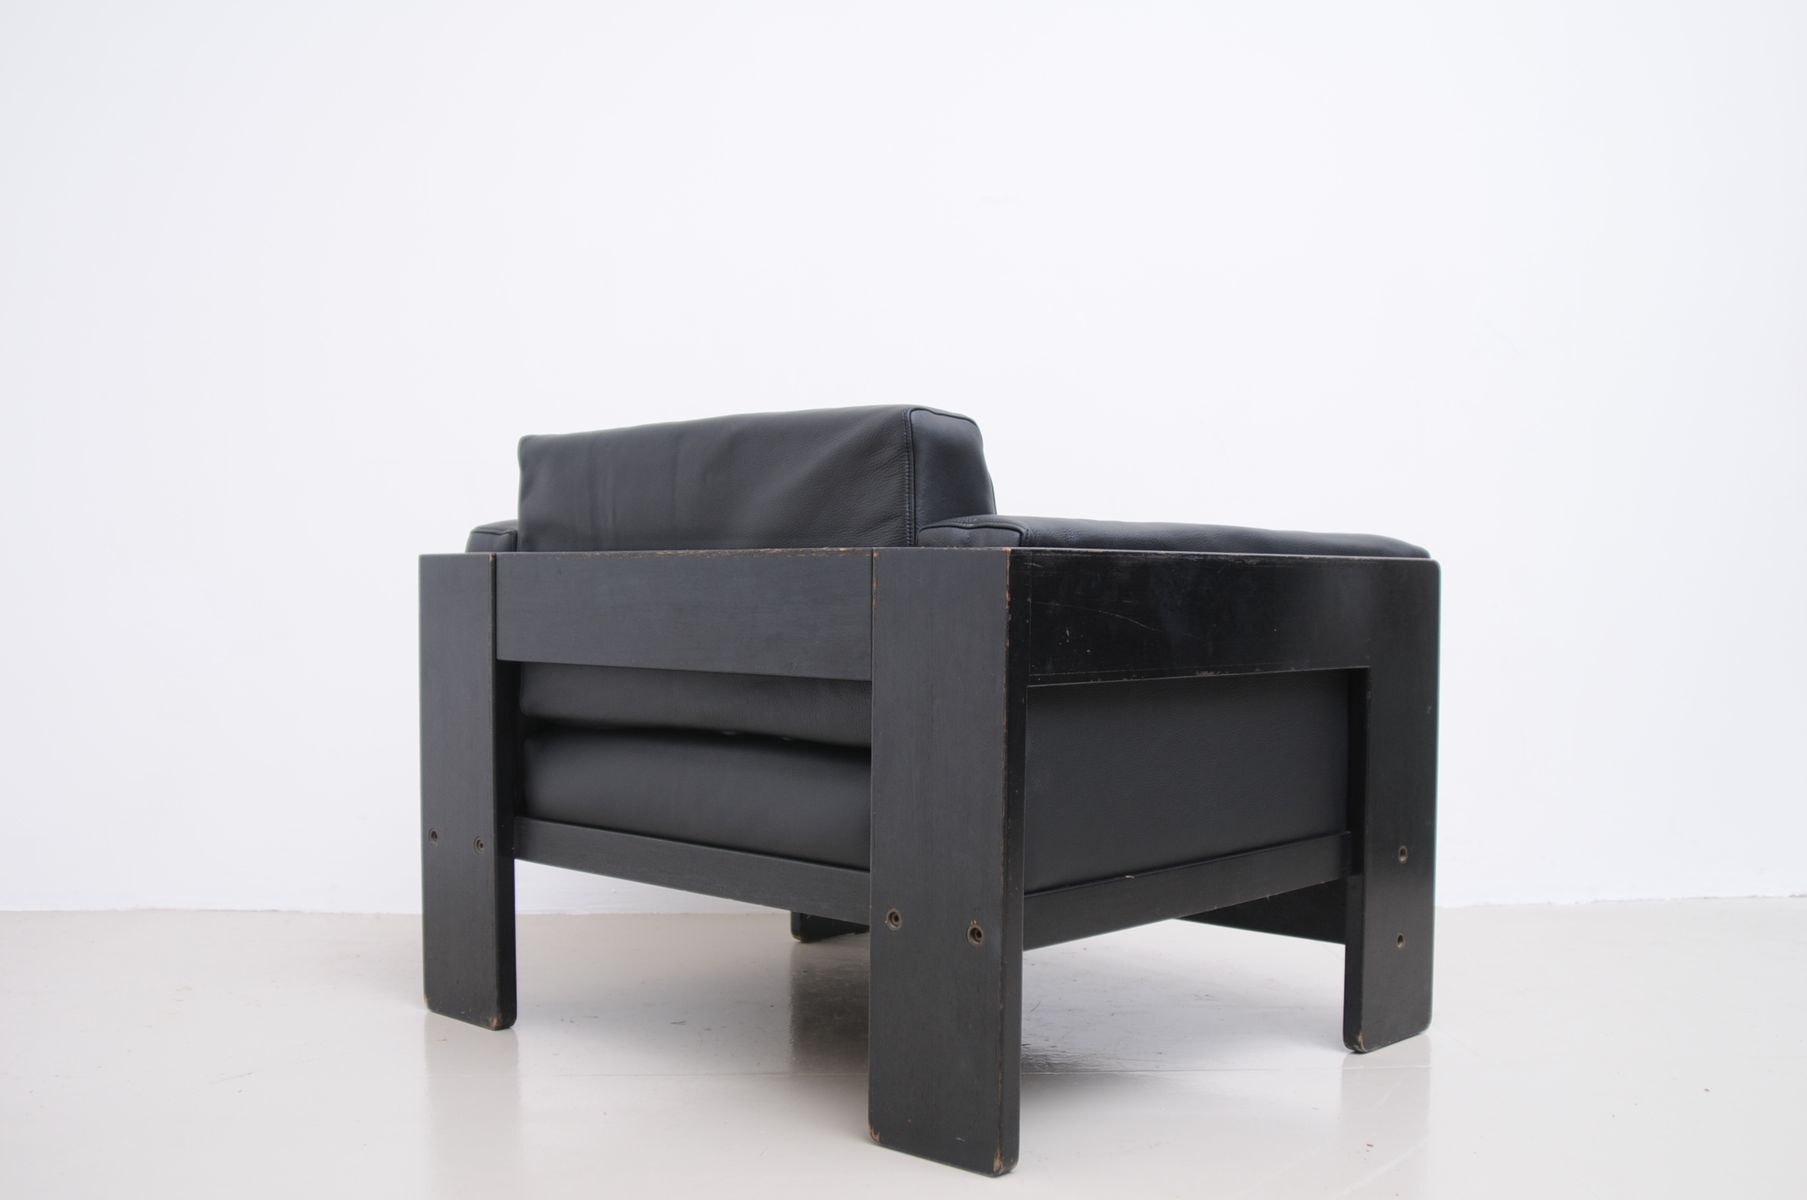 Bastian Club Chair by Tobia Scarpa for Knoll 1962 for sale at Pamono